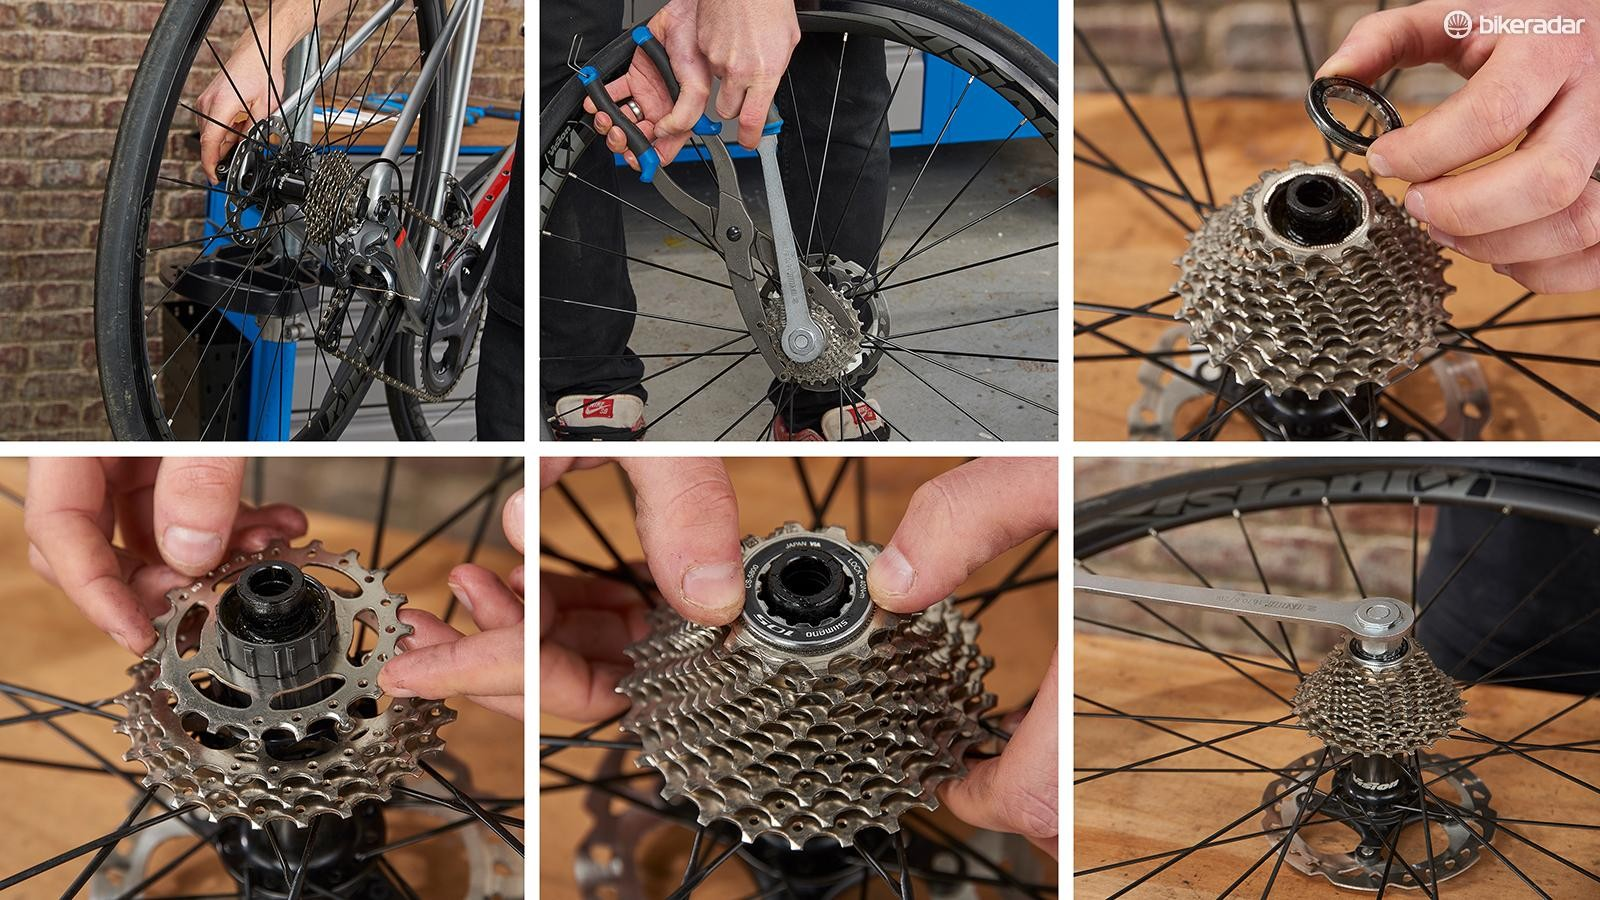 If your cassette is looking a little worse for wear, follow our tips to replace it